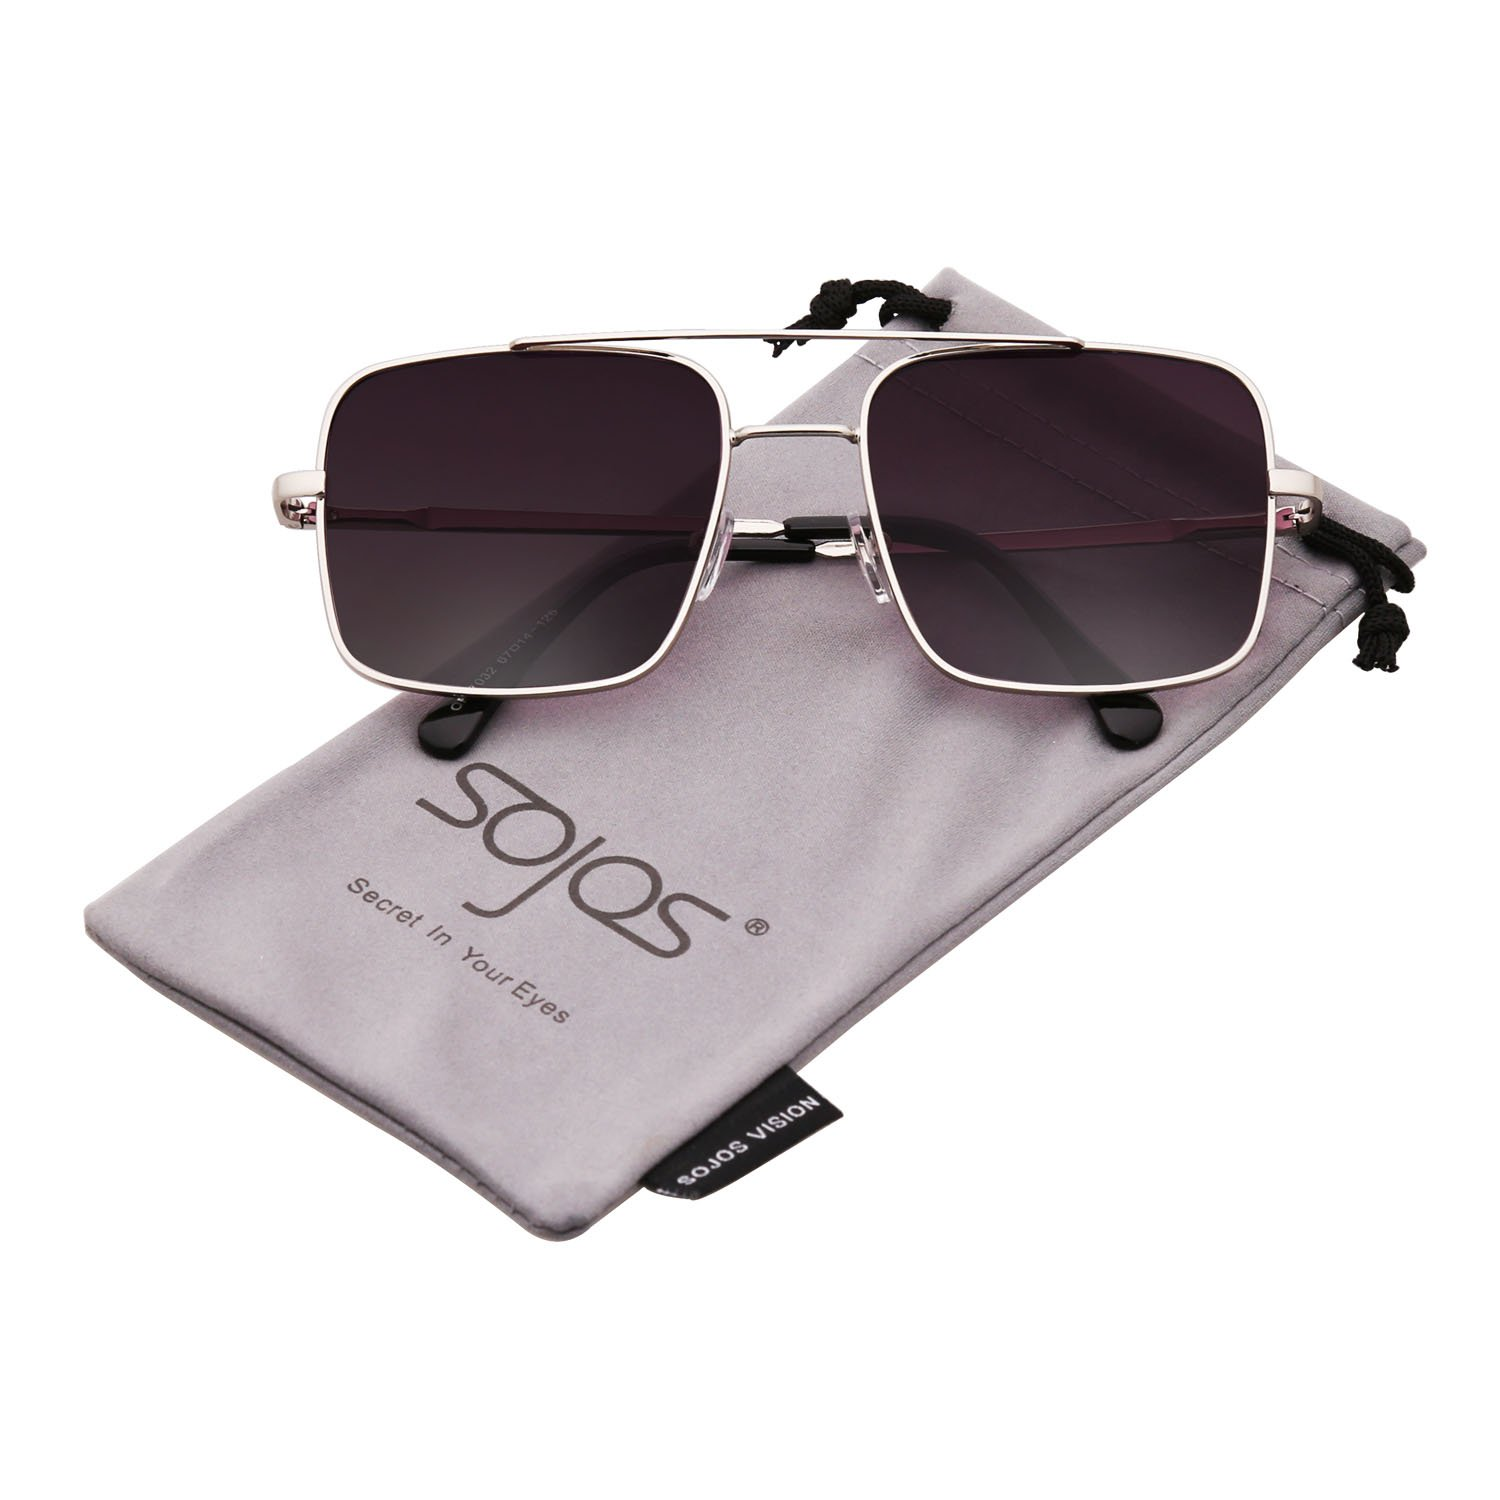 668d82d46c Details about SojoS Square Double Bridge Metal Frame Sunglasses for Men and  Women SJ1089 with